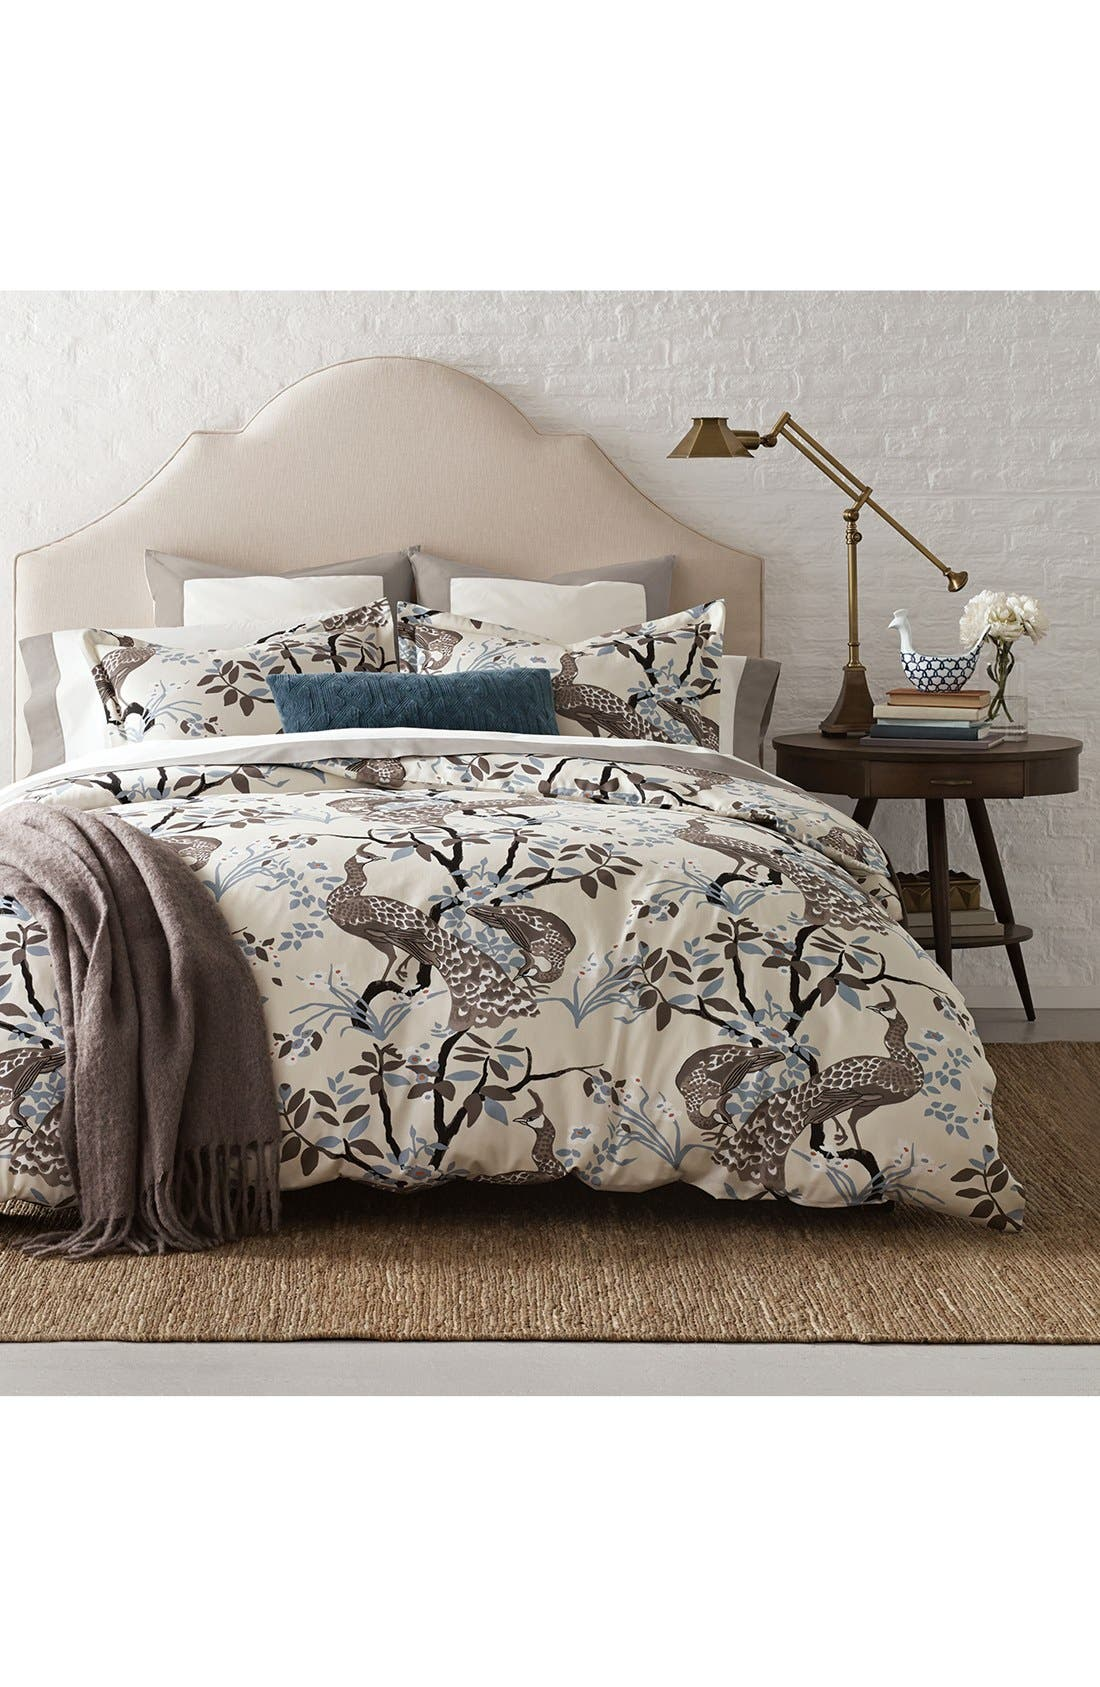 'Peacock' Duvet Cover,                         Main,                         color, Dove